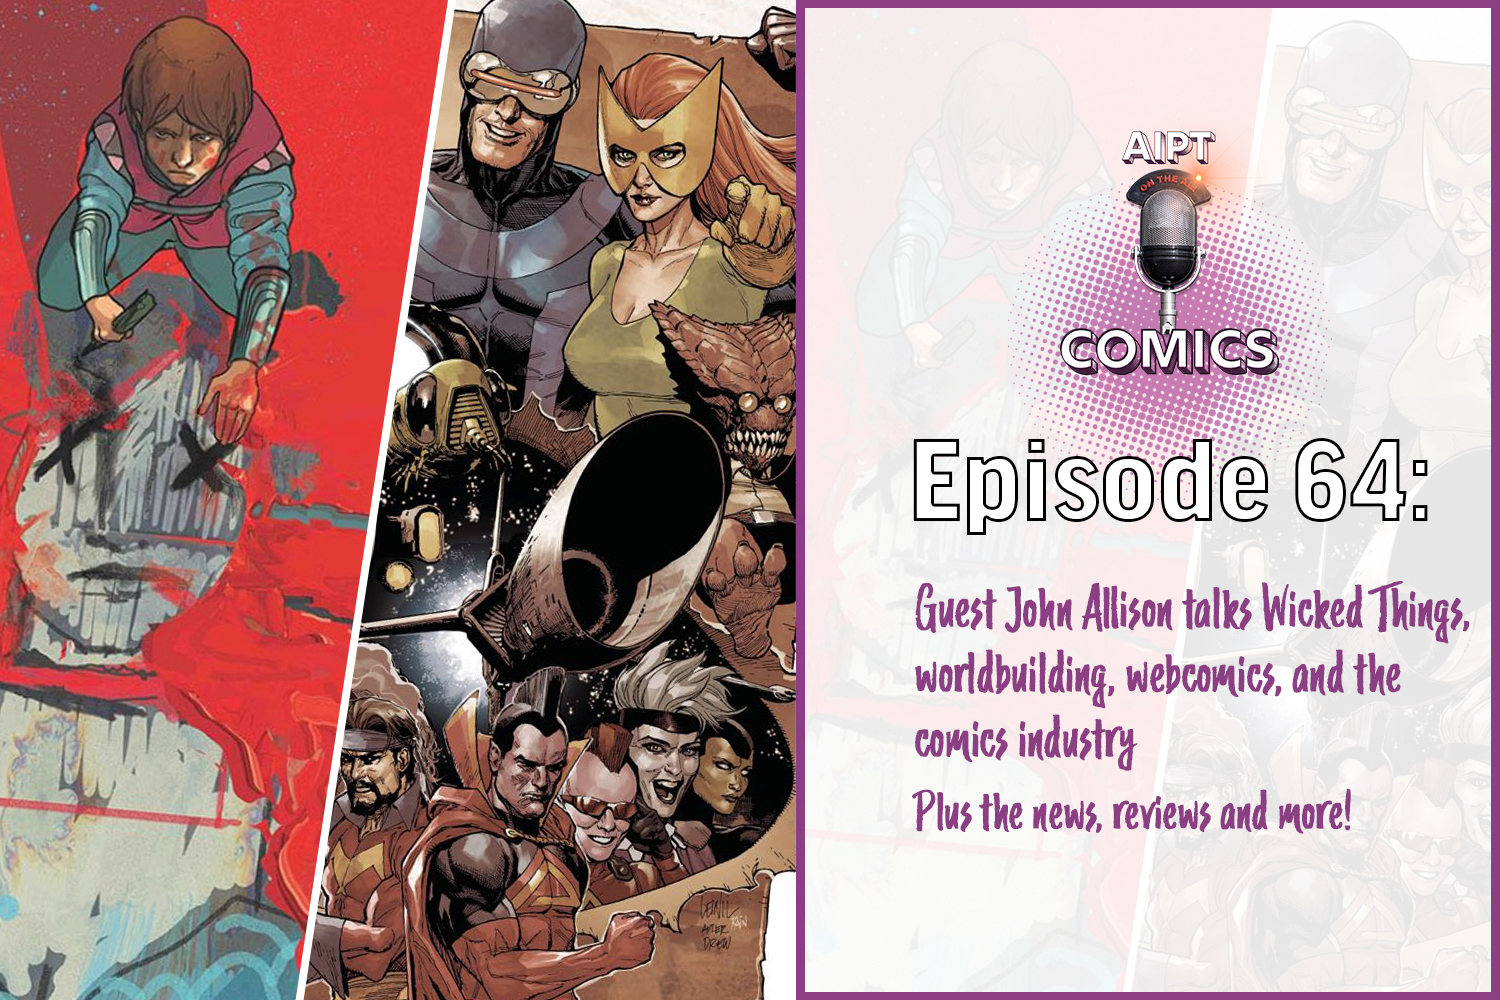 AIPT Comics Podcast Episode 64: John Allison talks worldbuilding and Wicked Things, plus we recap the pulse of the comic industry